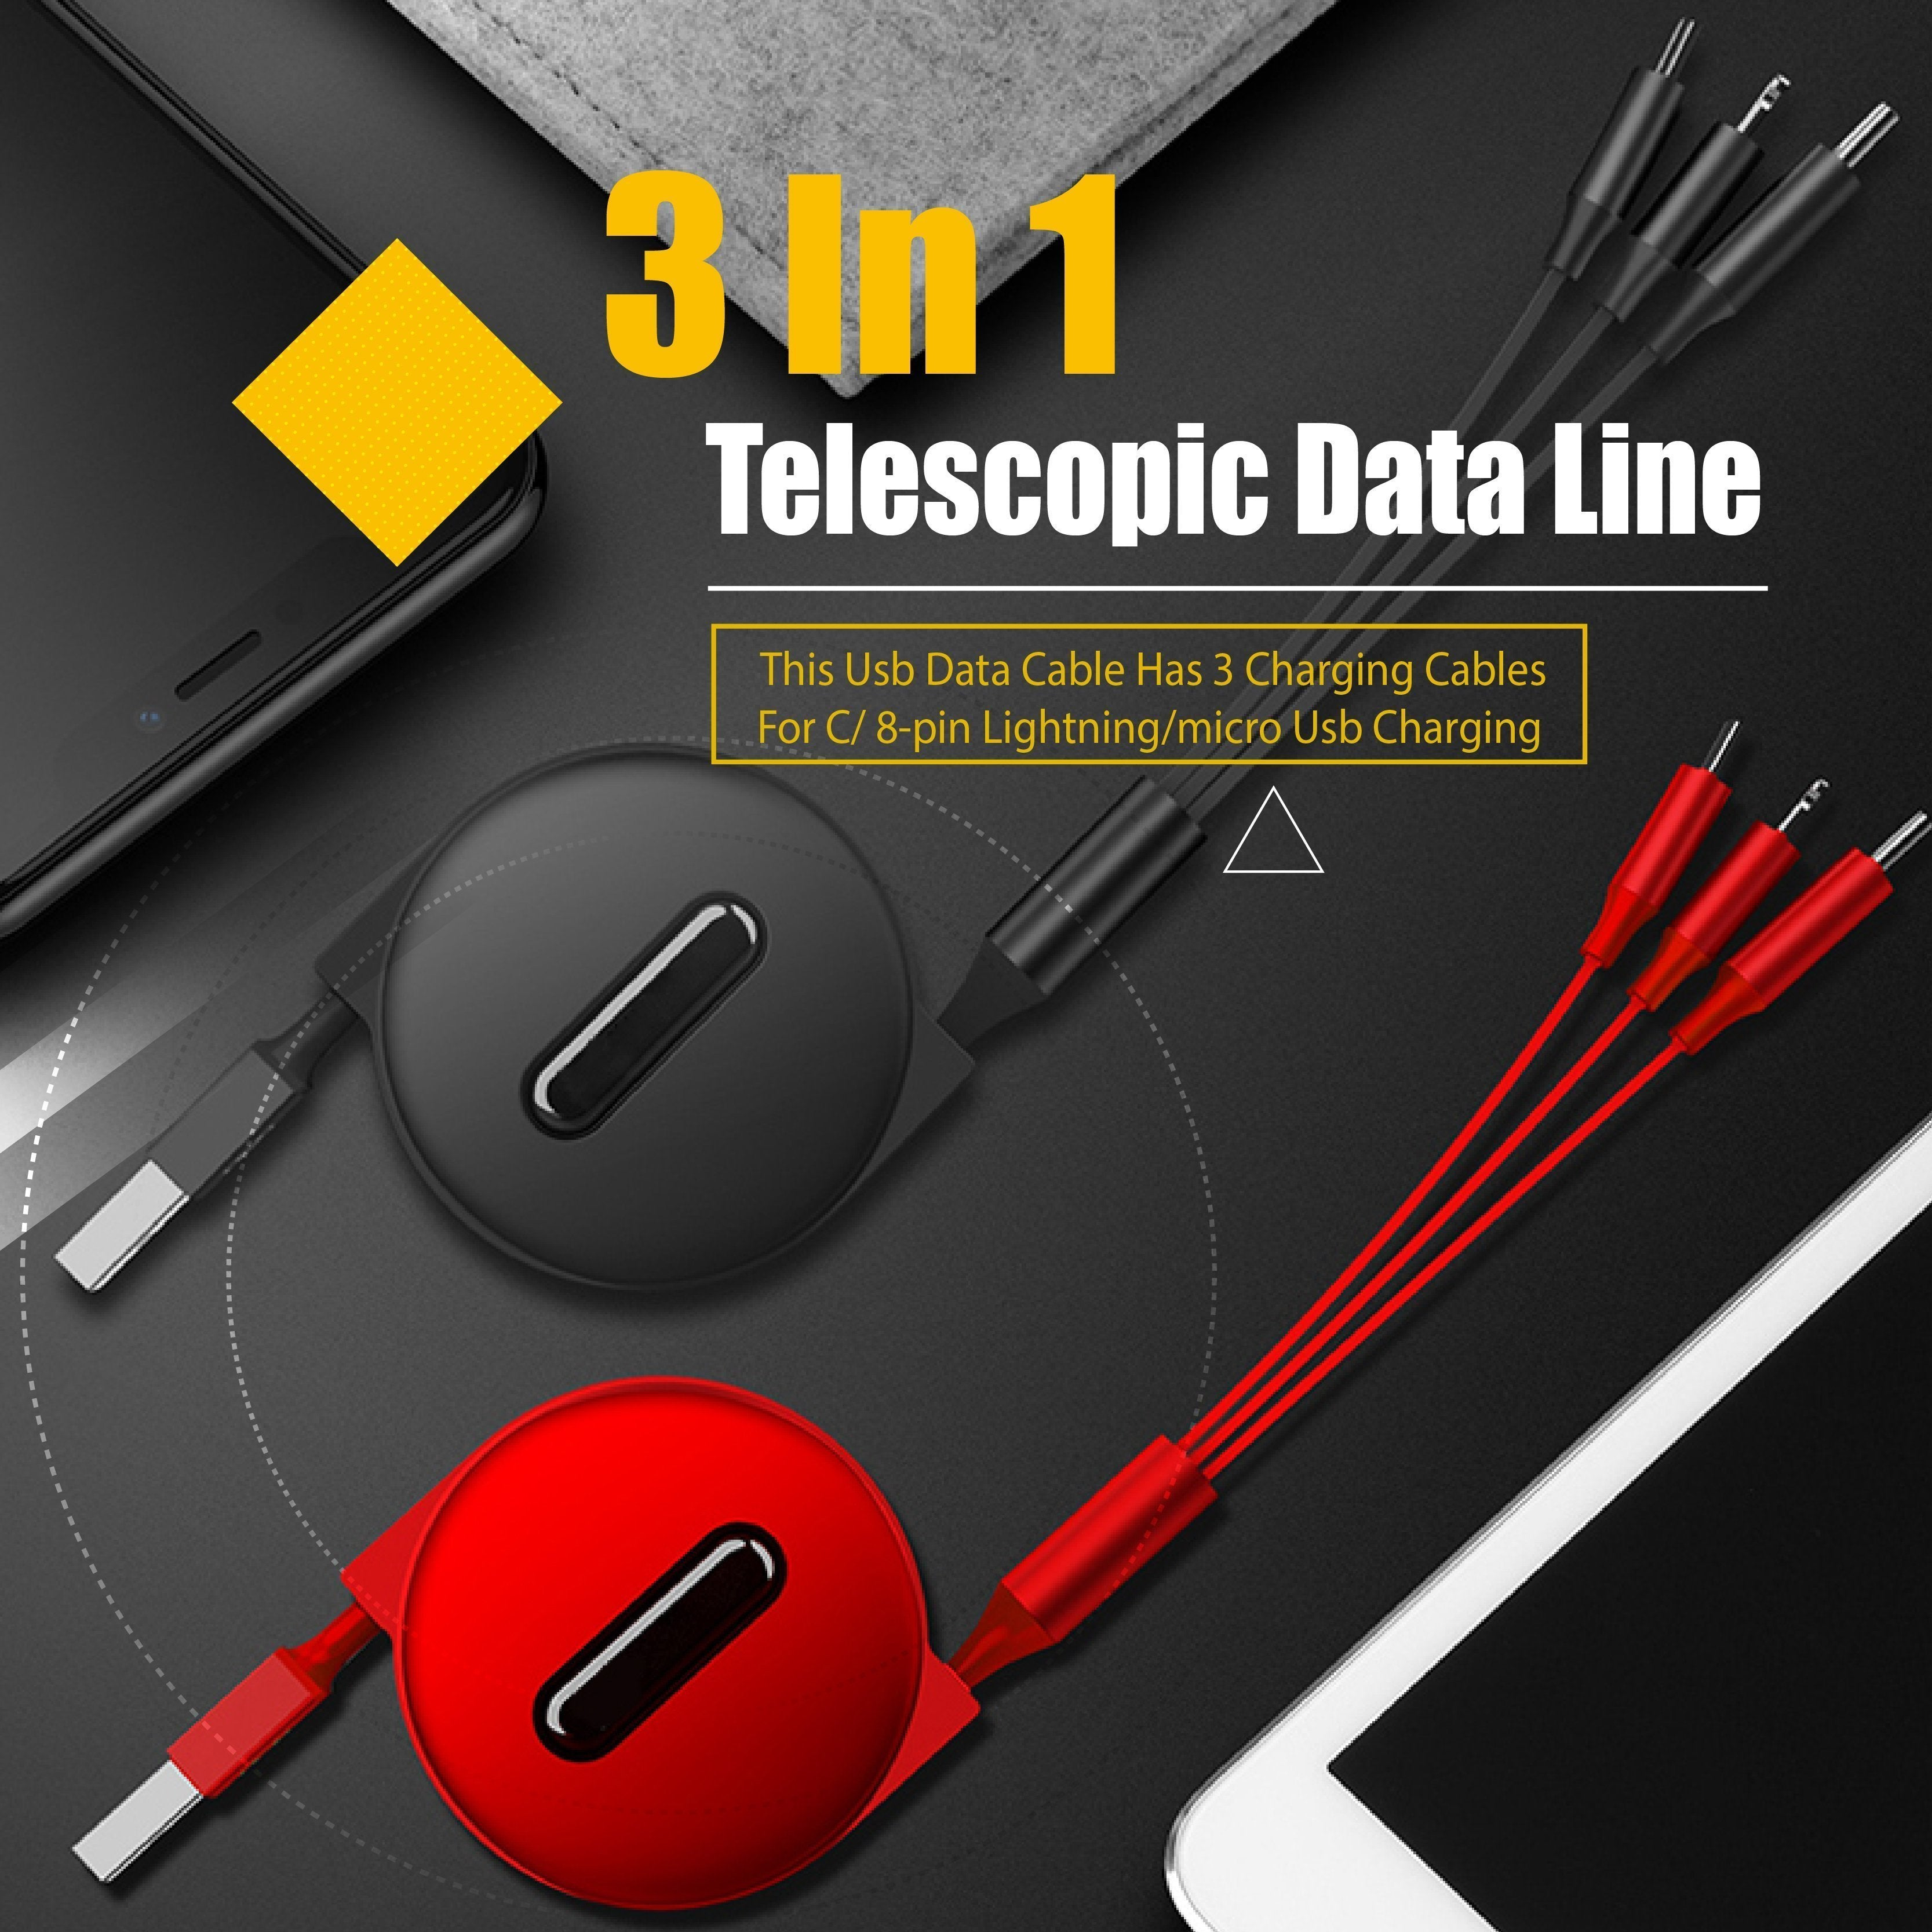 3 In 1 Telescopic Data Line - planetshopper.net